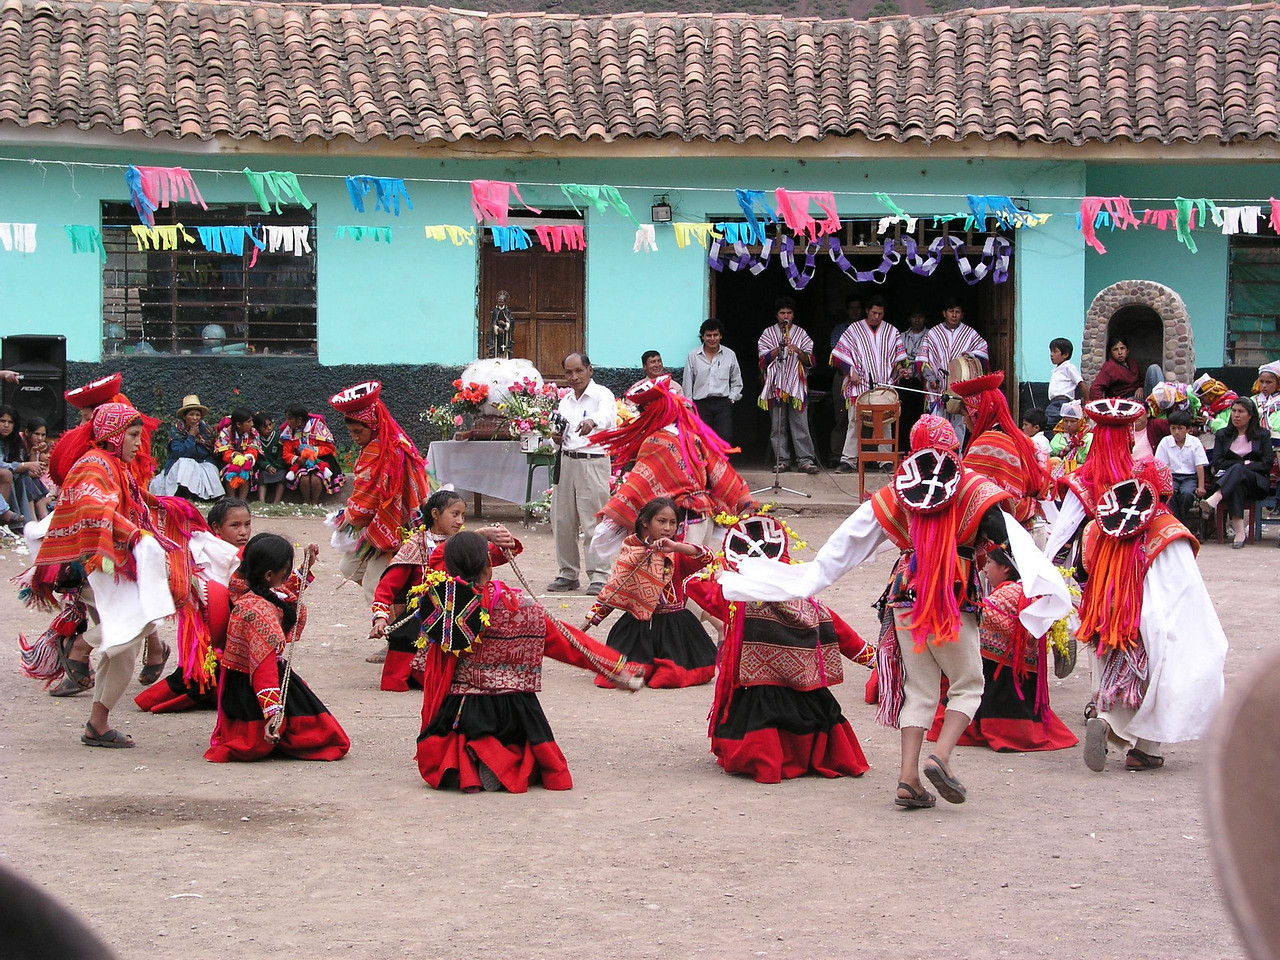 Dance customs were alive and well in the Sacred Valley.